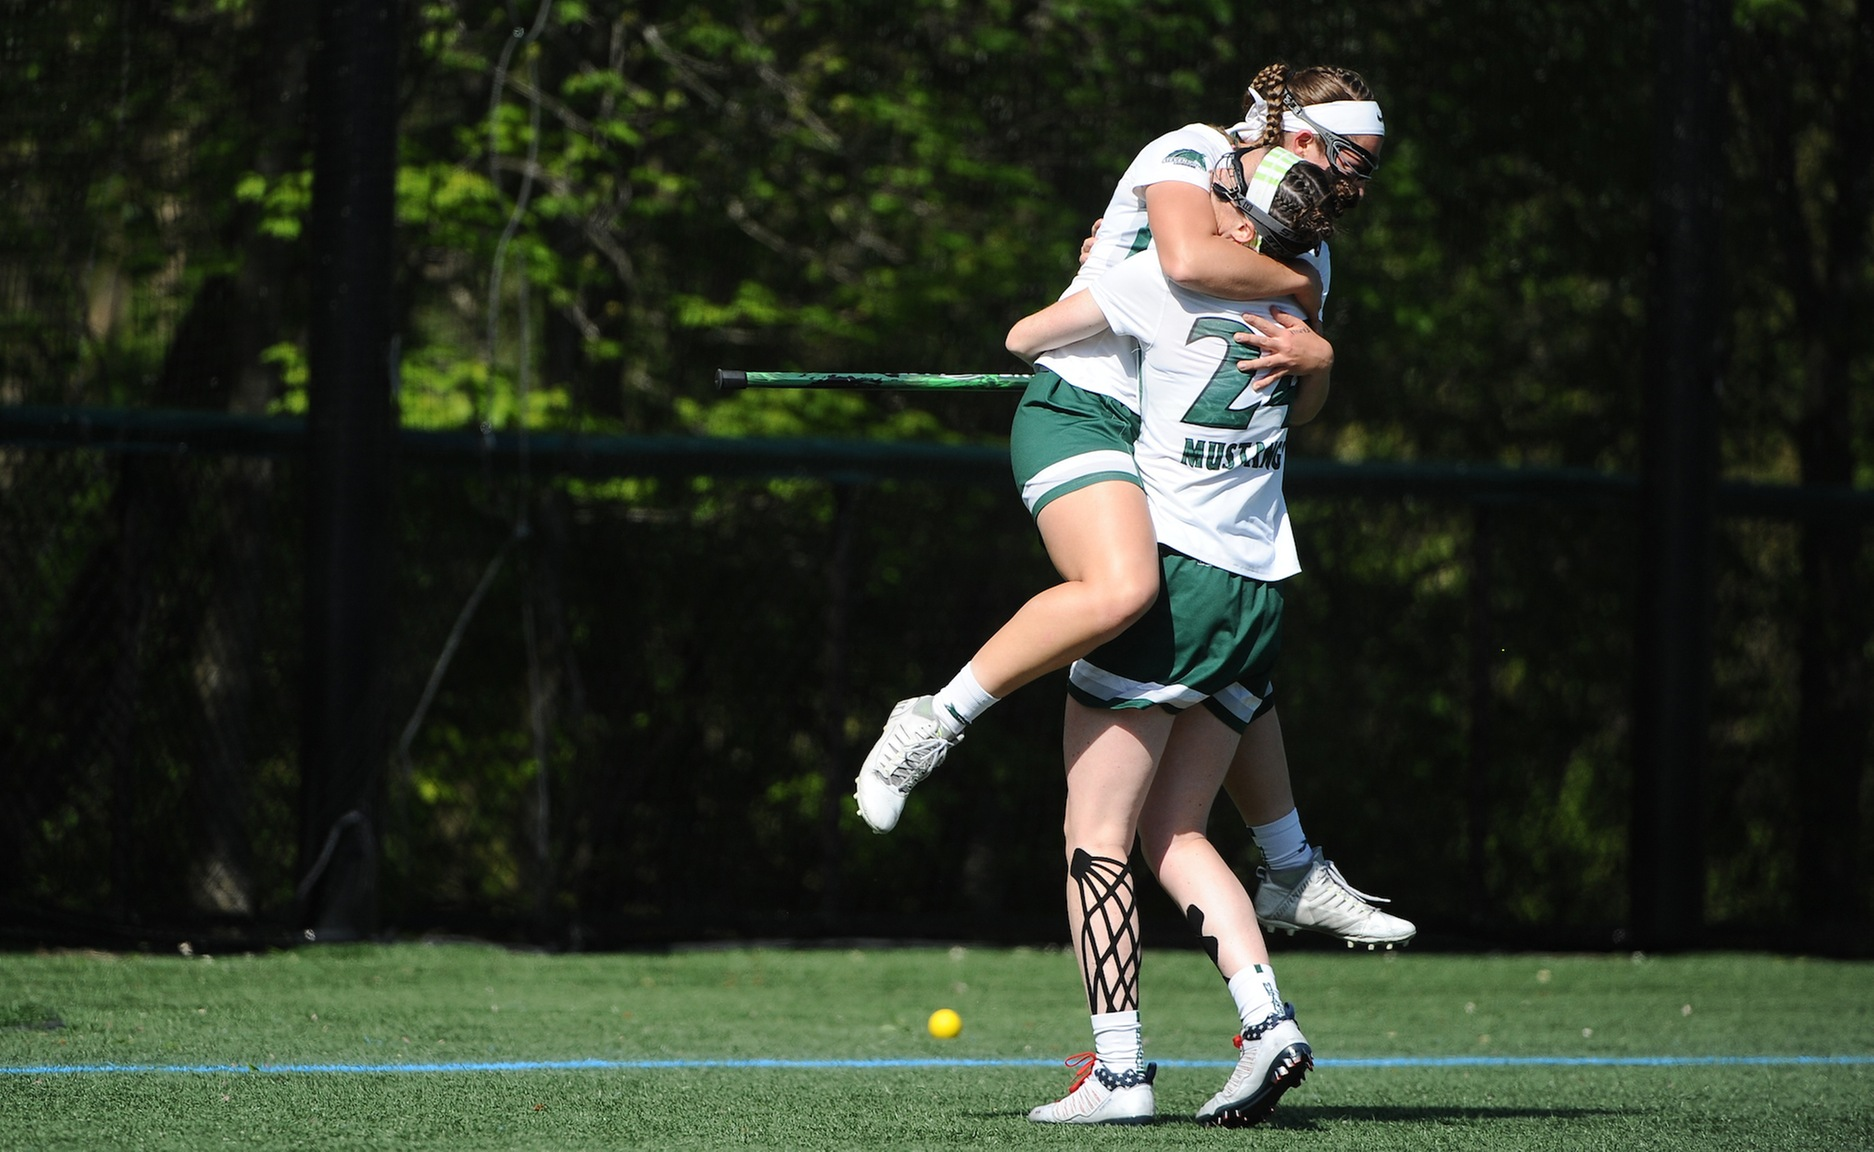 Monteiro, Roerty Named to IWLCA Division III All-Metro Region Teams